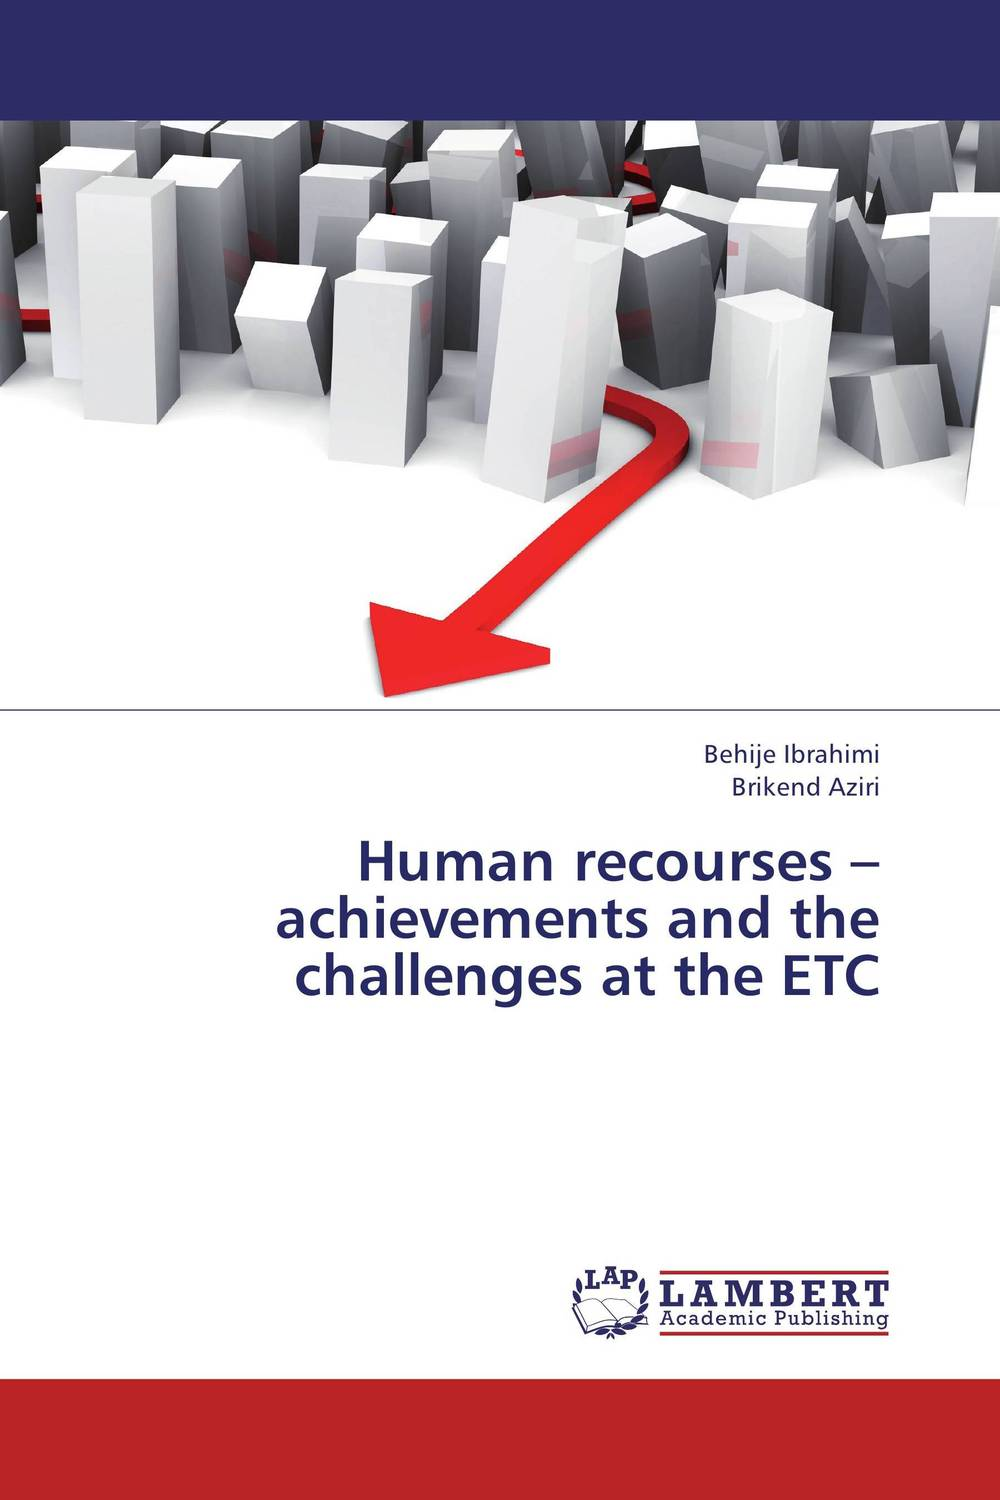 Human recourses – achievements and the challenges at the   ETC mick johnson motivation is at